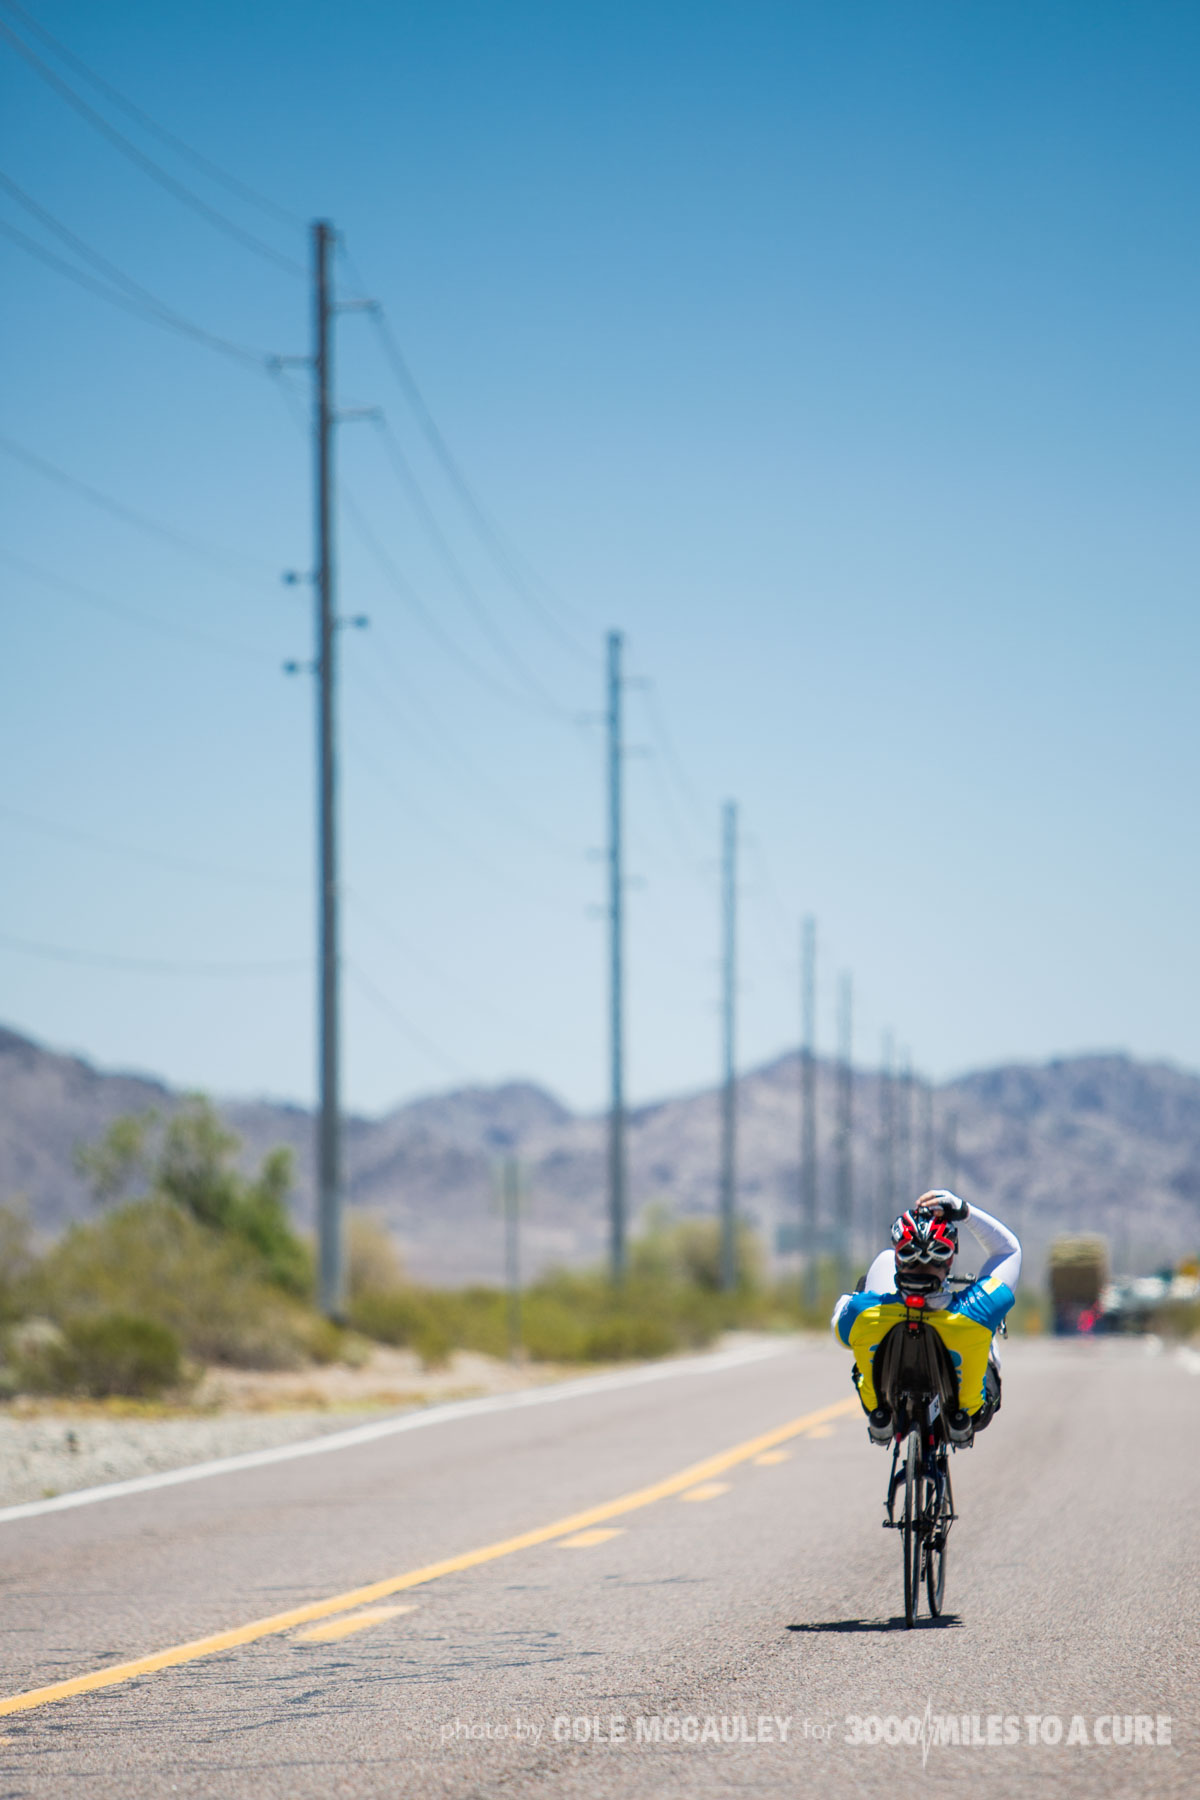 Despite falling on hot roads in Arizona and filling his jersey with ice to get through the heat, Rob kept riding.